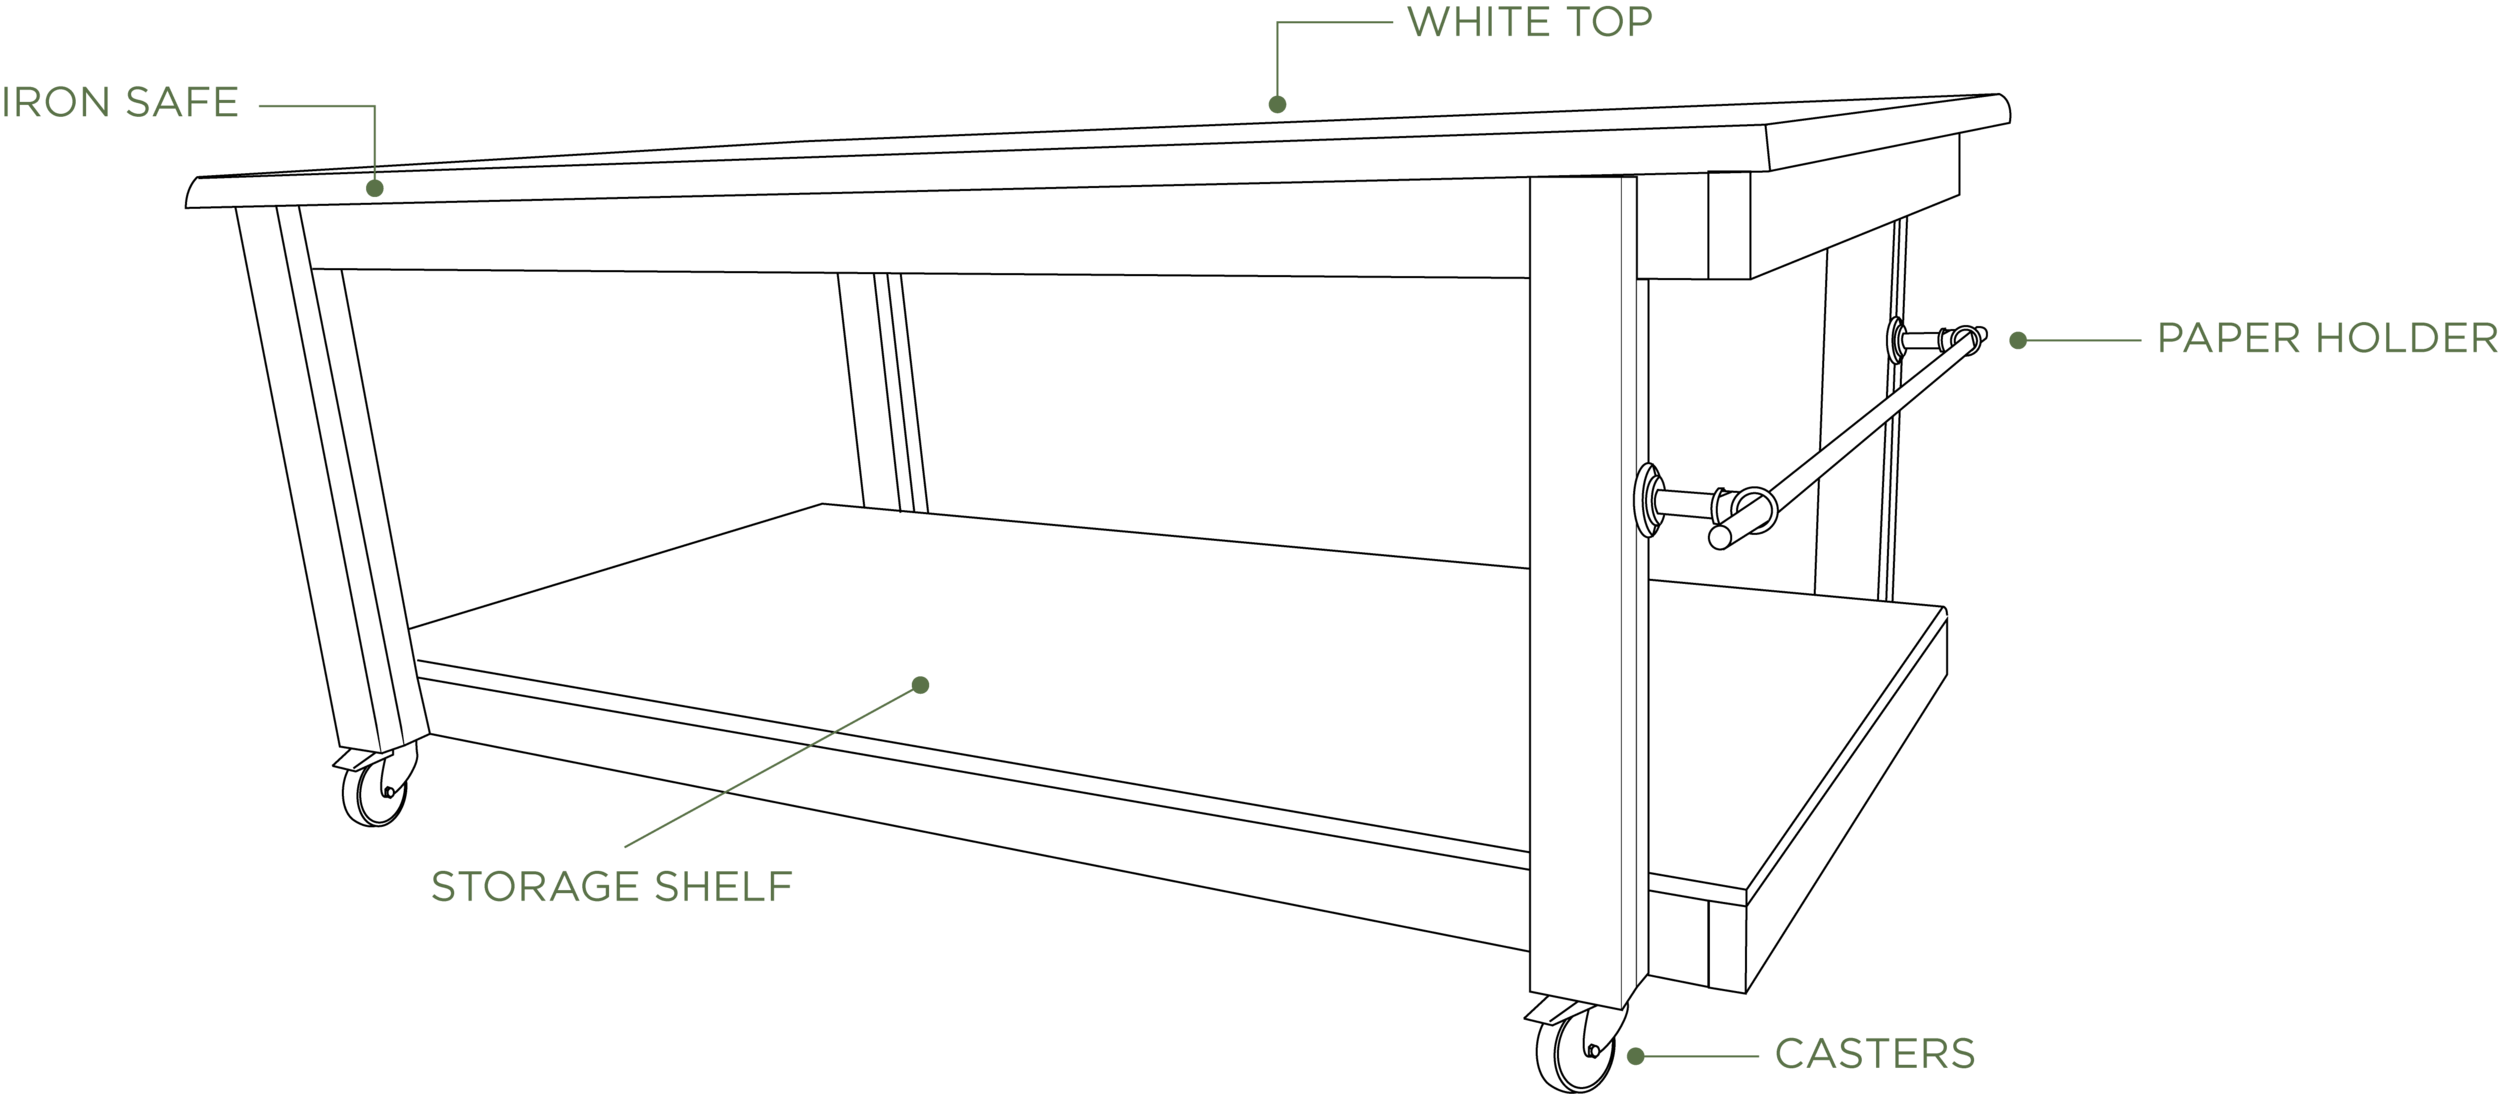 custom-cutting-table-design-points-of-measure.png